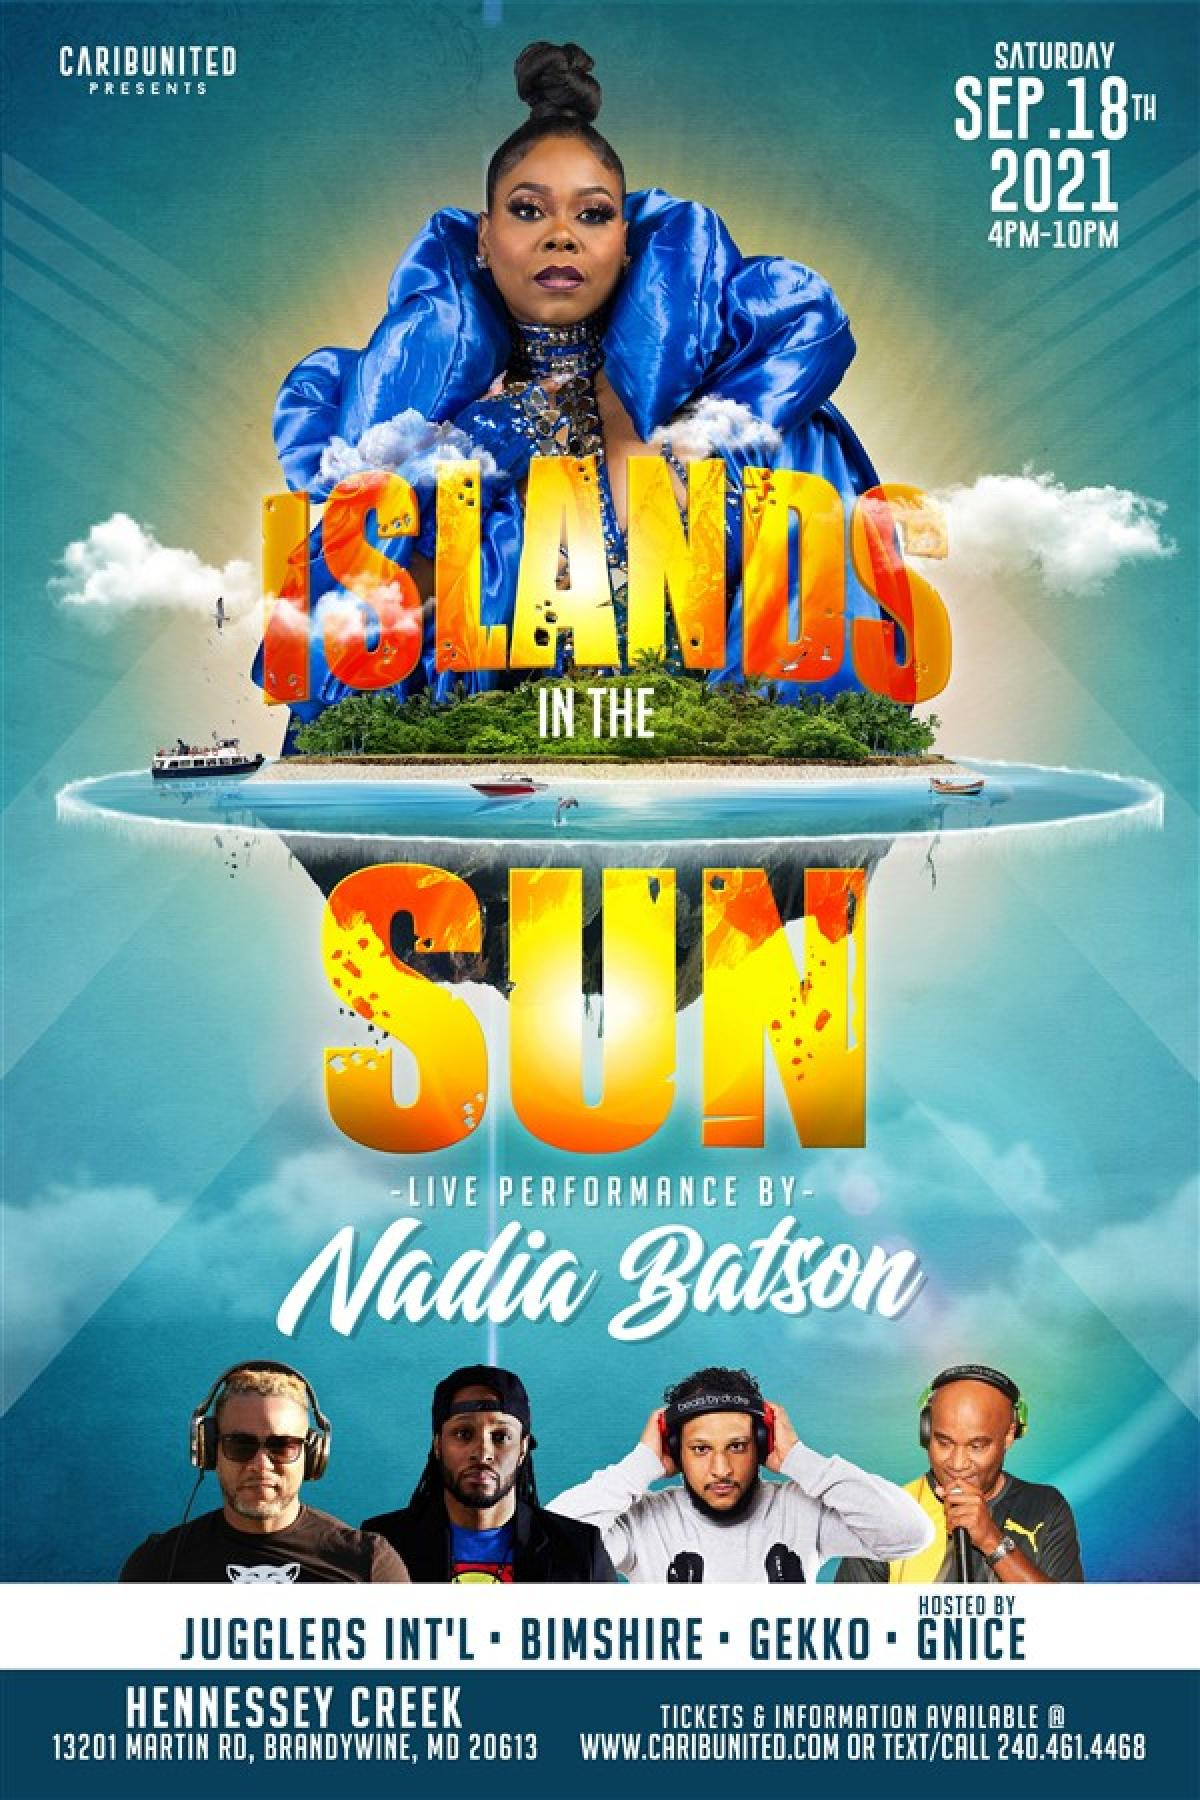 Islands In The Sun flyer or graphic.